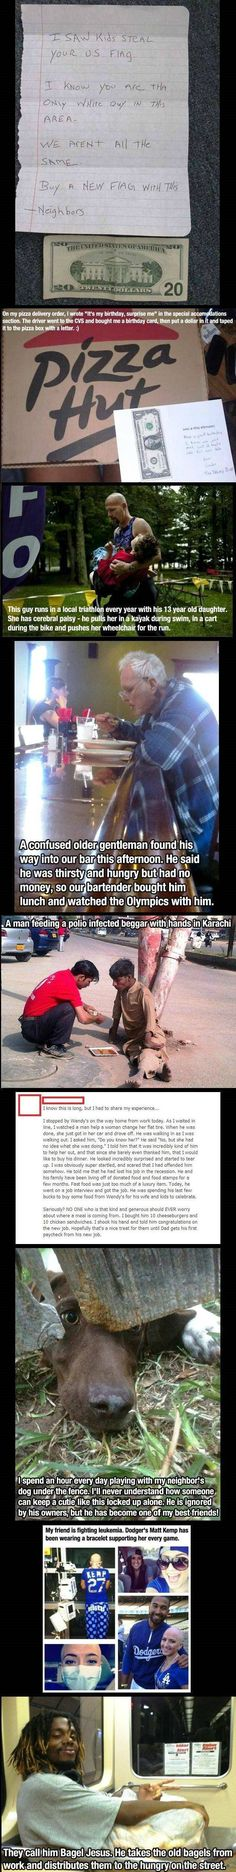 Restore Your Faith In Humanity. This always brings a tear or two to my eye